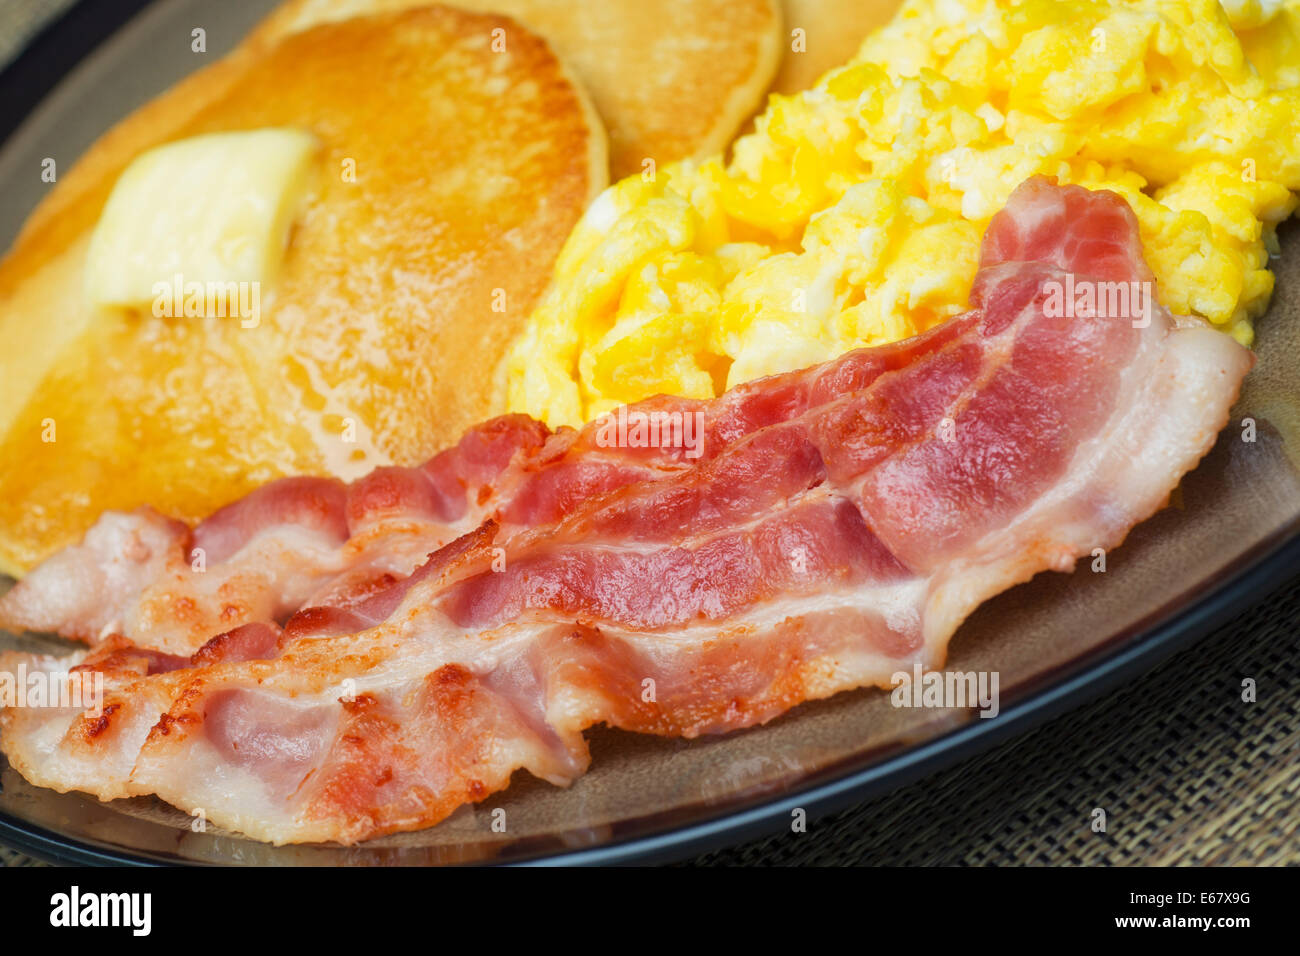 Eggs and Bacon, Scrambled Eggs and Pancakes, Pancake Breakfast - Stock Image